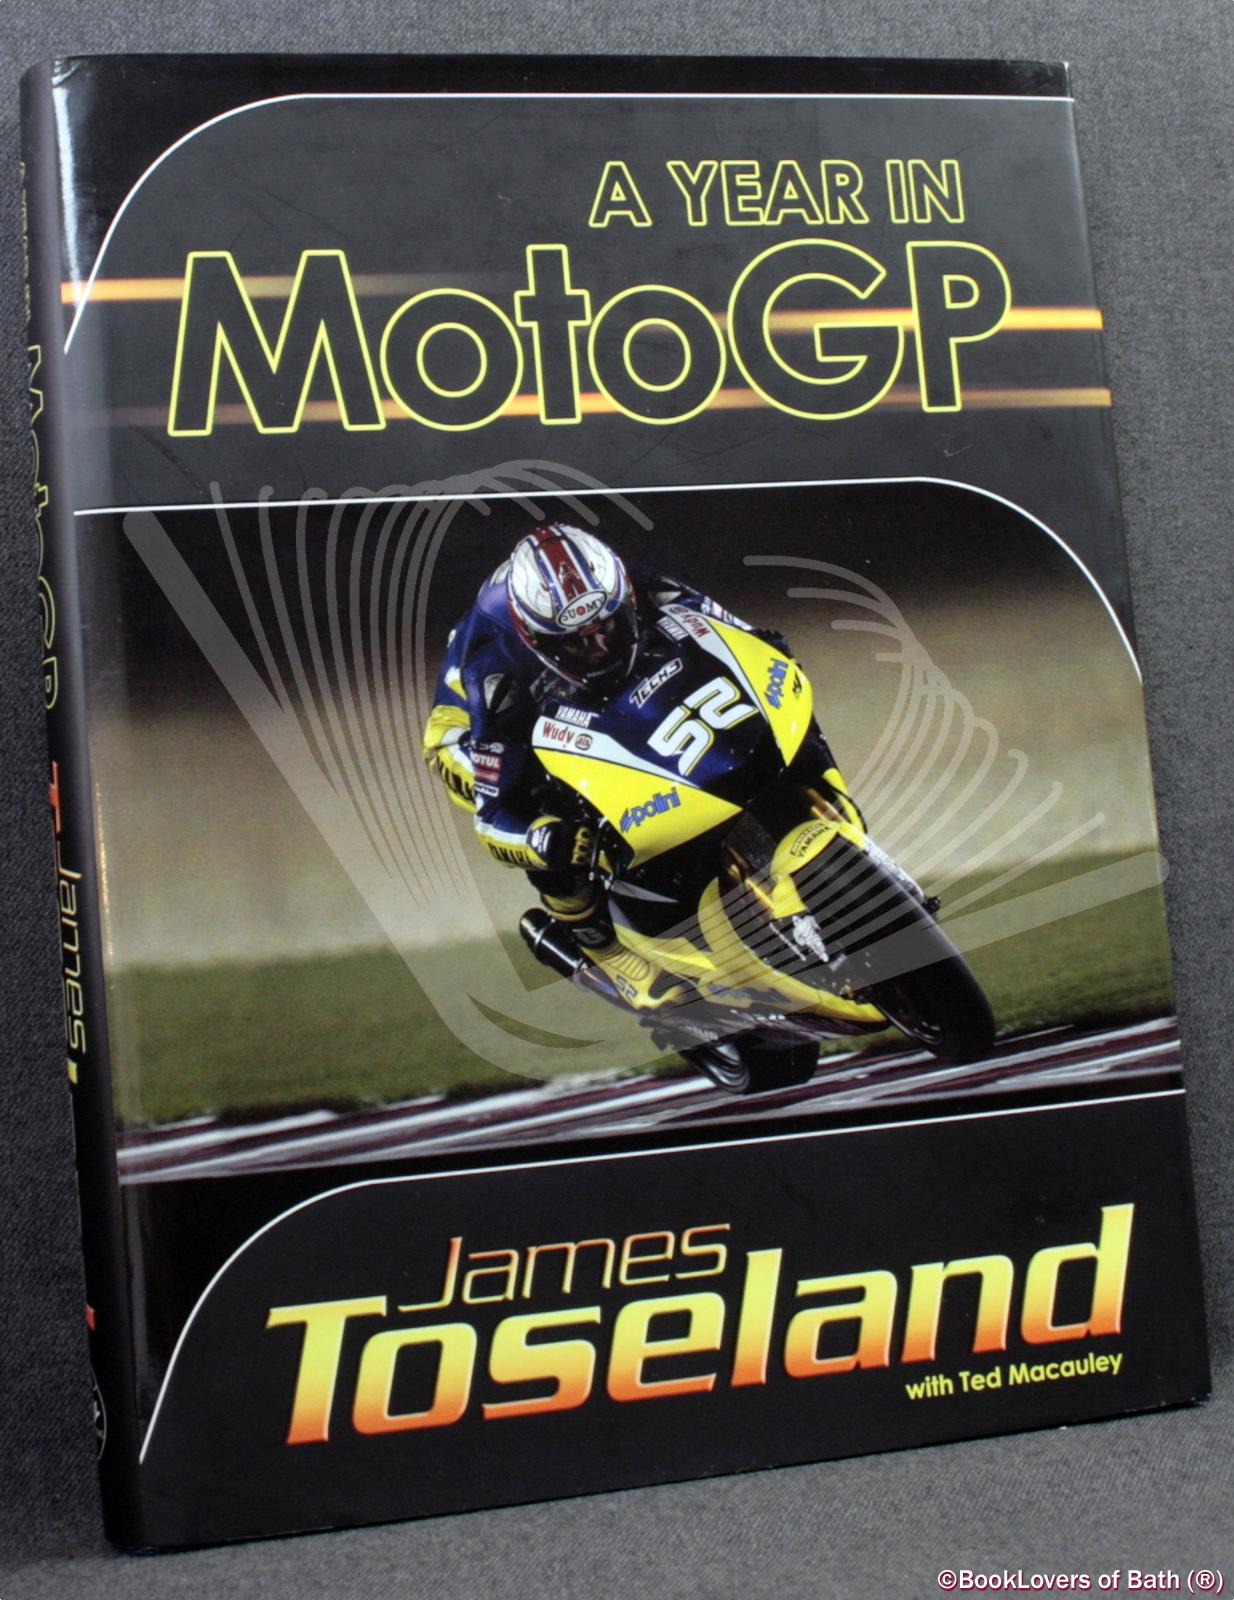 A Year in MotoGP - James Toseland with Ted MacAuley